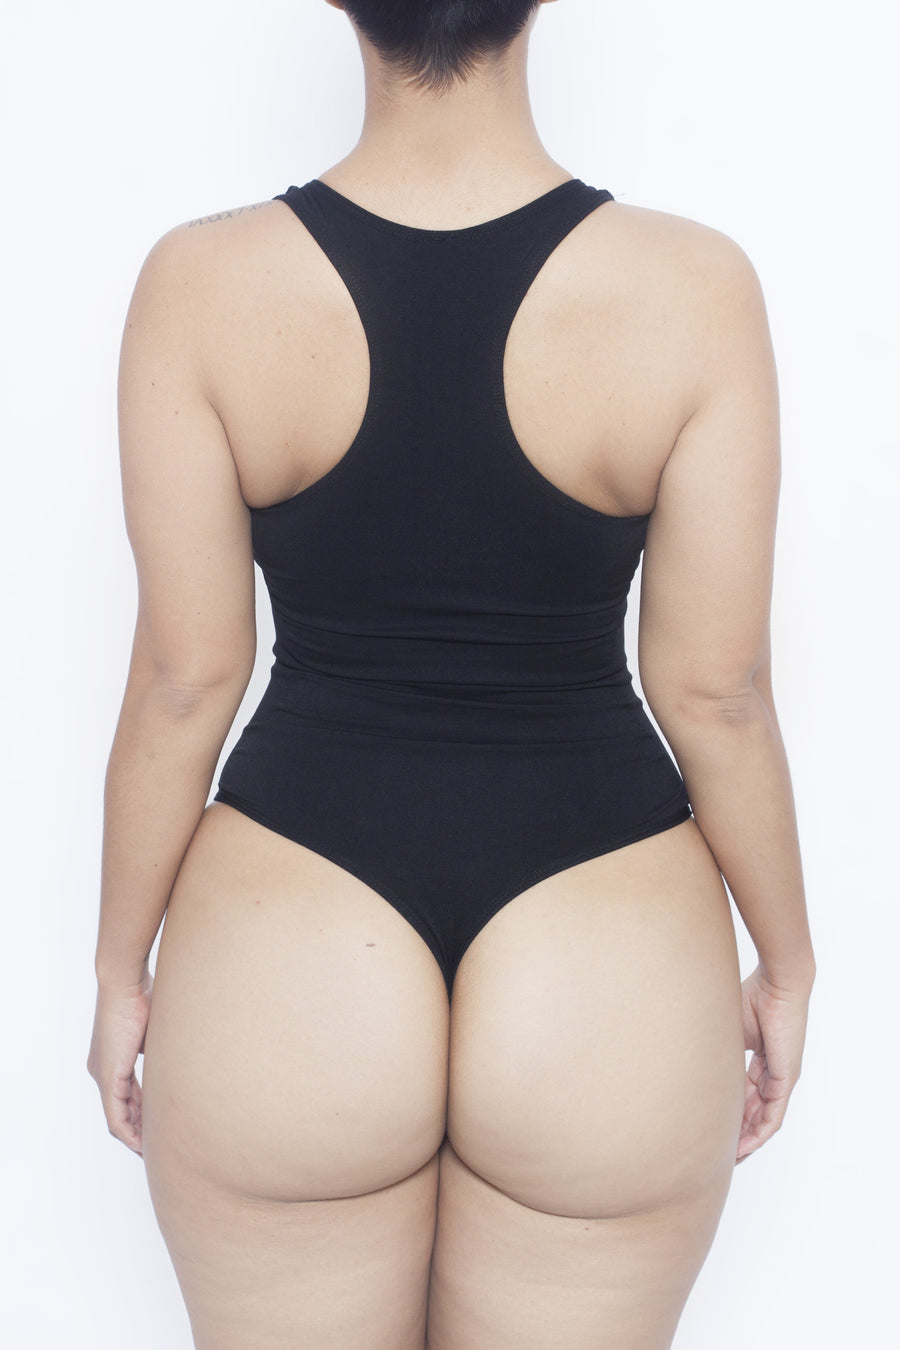 Black Body By Babes Thong Bodysuit w/ Tummy Control - Babes And Felines | Specializing in Fashionable Staple Pieces for Every Shape and Size